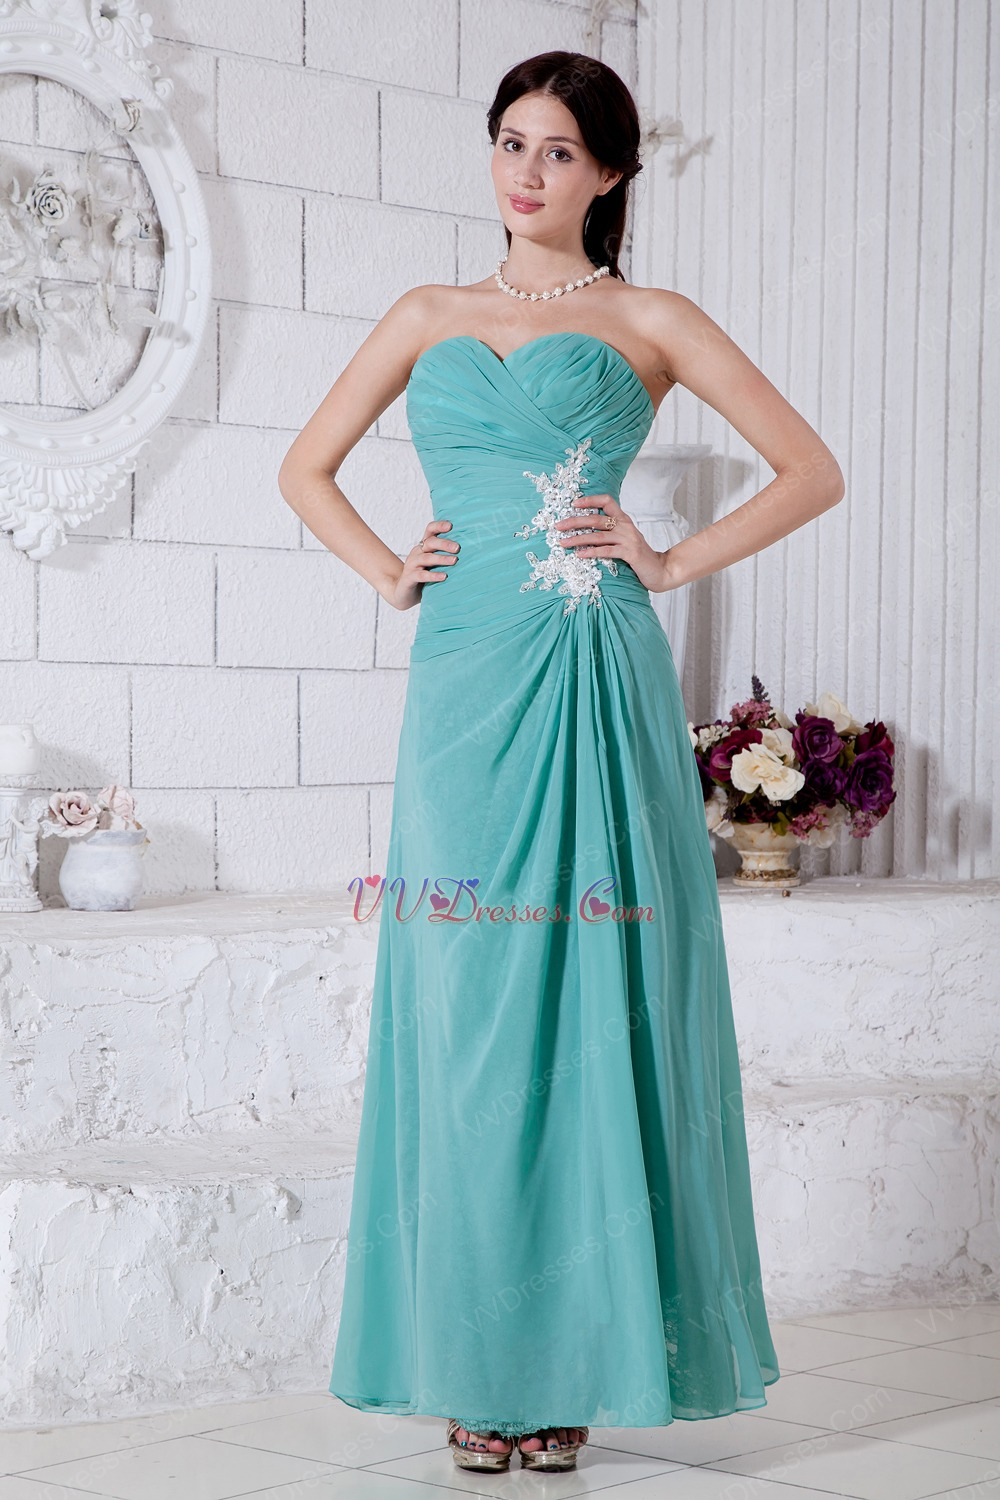 Bridesmaid dresses turquoise color discount wedding dresses for Turquoise bridesmaid dresses for beach wedding